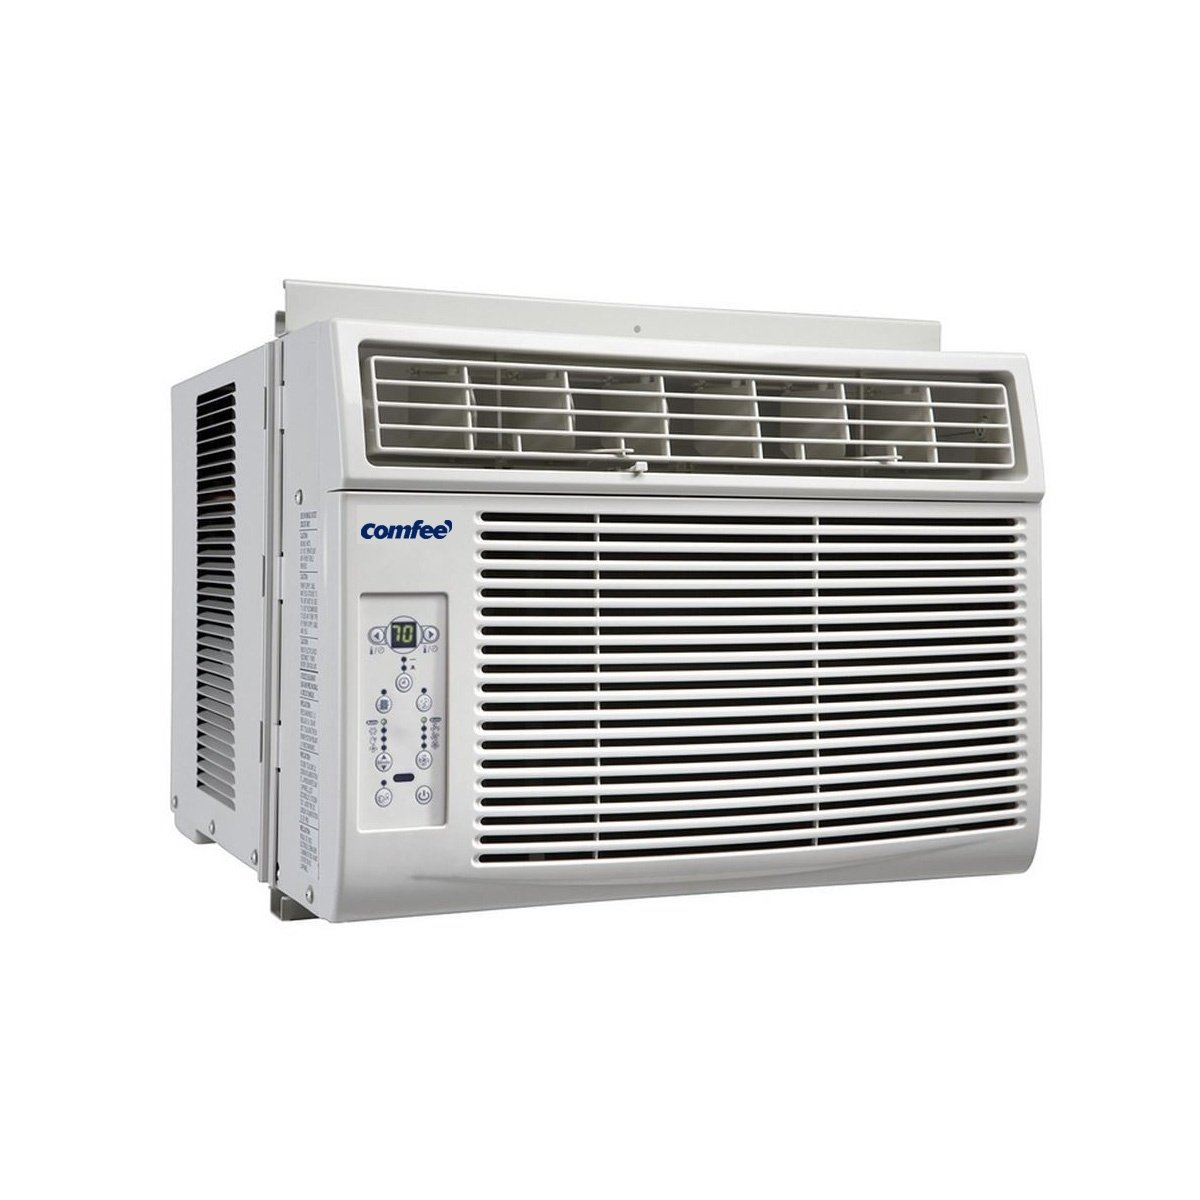 115v comfee r410a window unit cool wizard air for 110 window unit